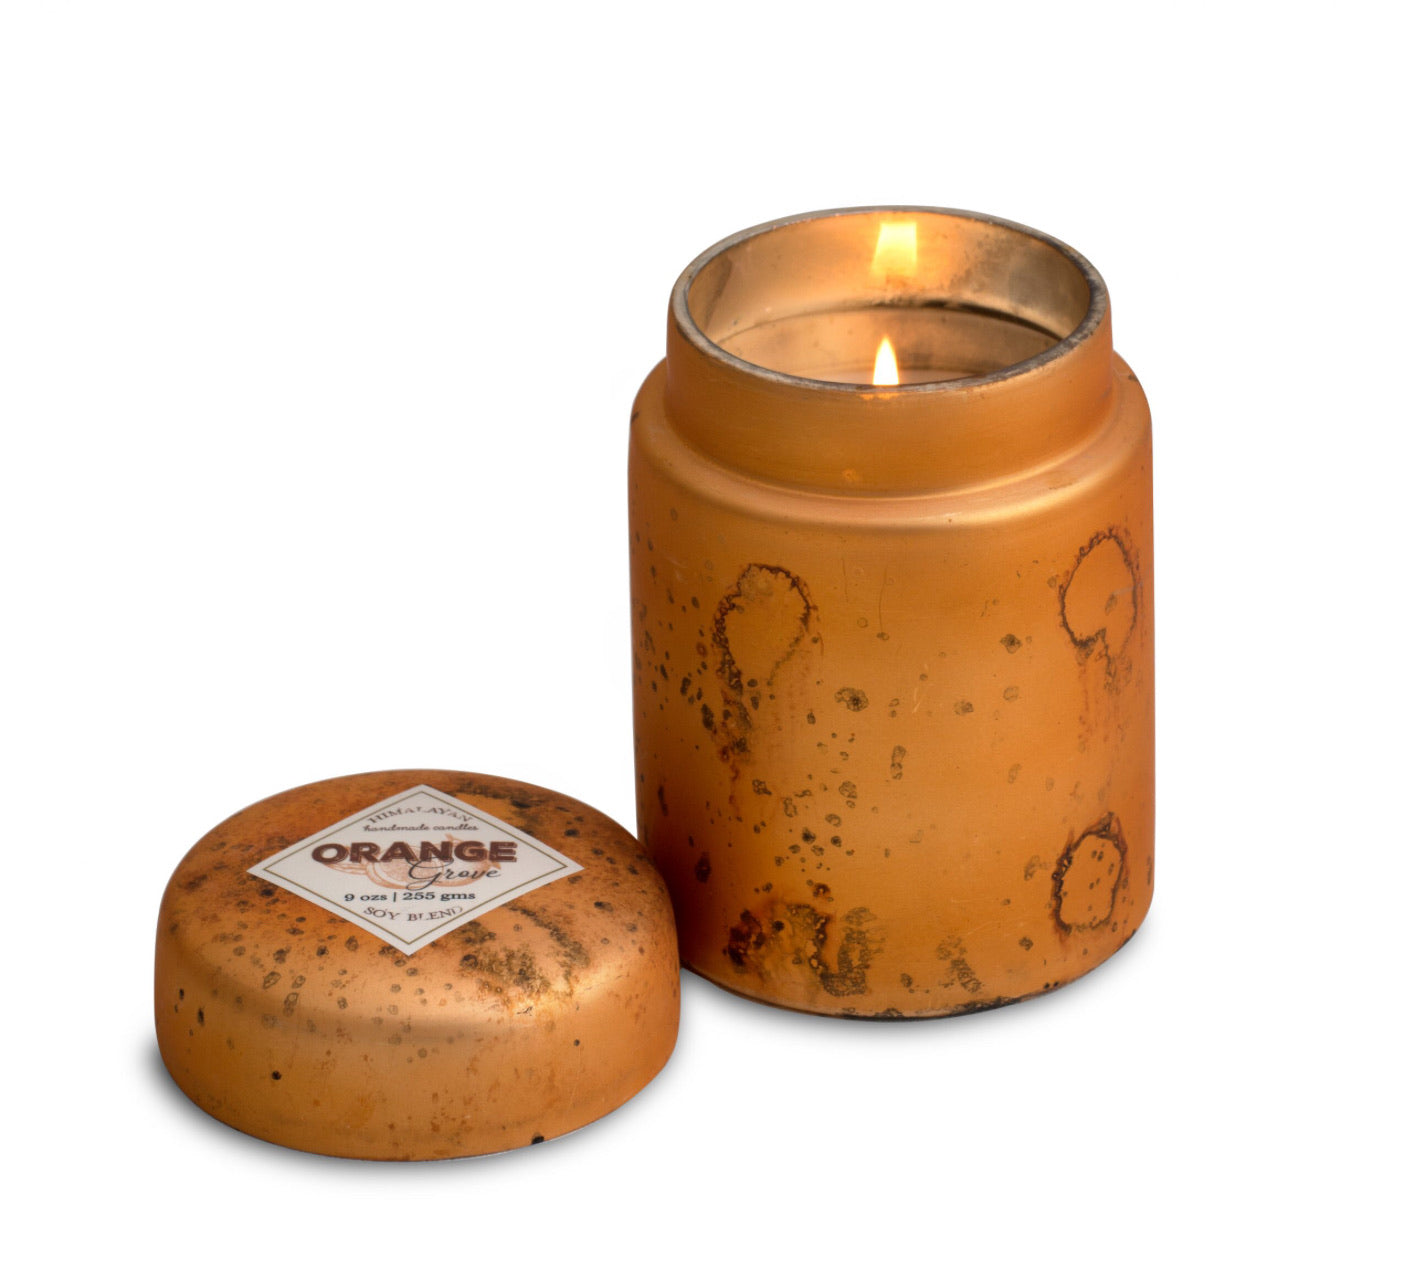 Mountain Fire Orange Grove | by Himalayan Candles